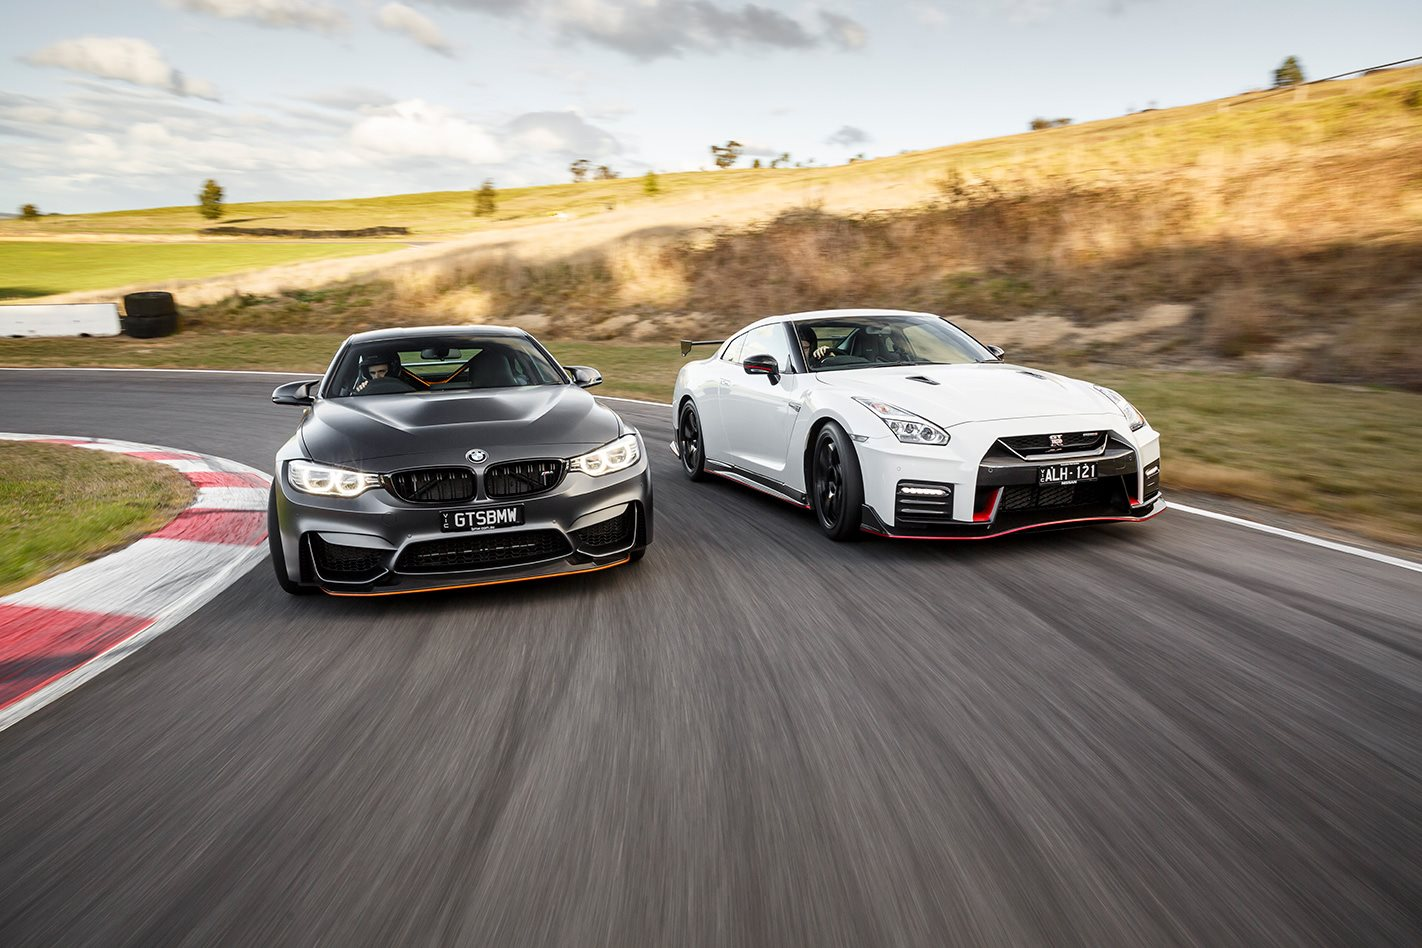 2017 nissan gt r nismo vs 2017 bmw m4 gts comparison review